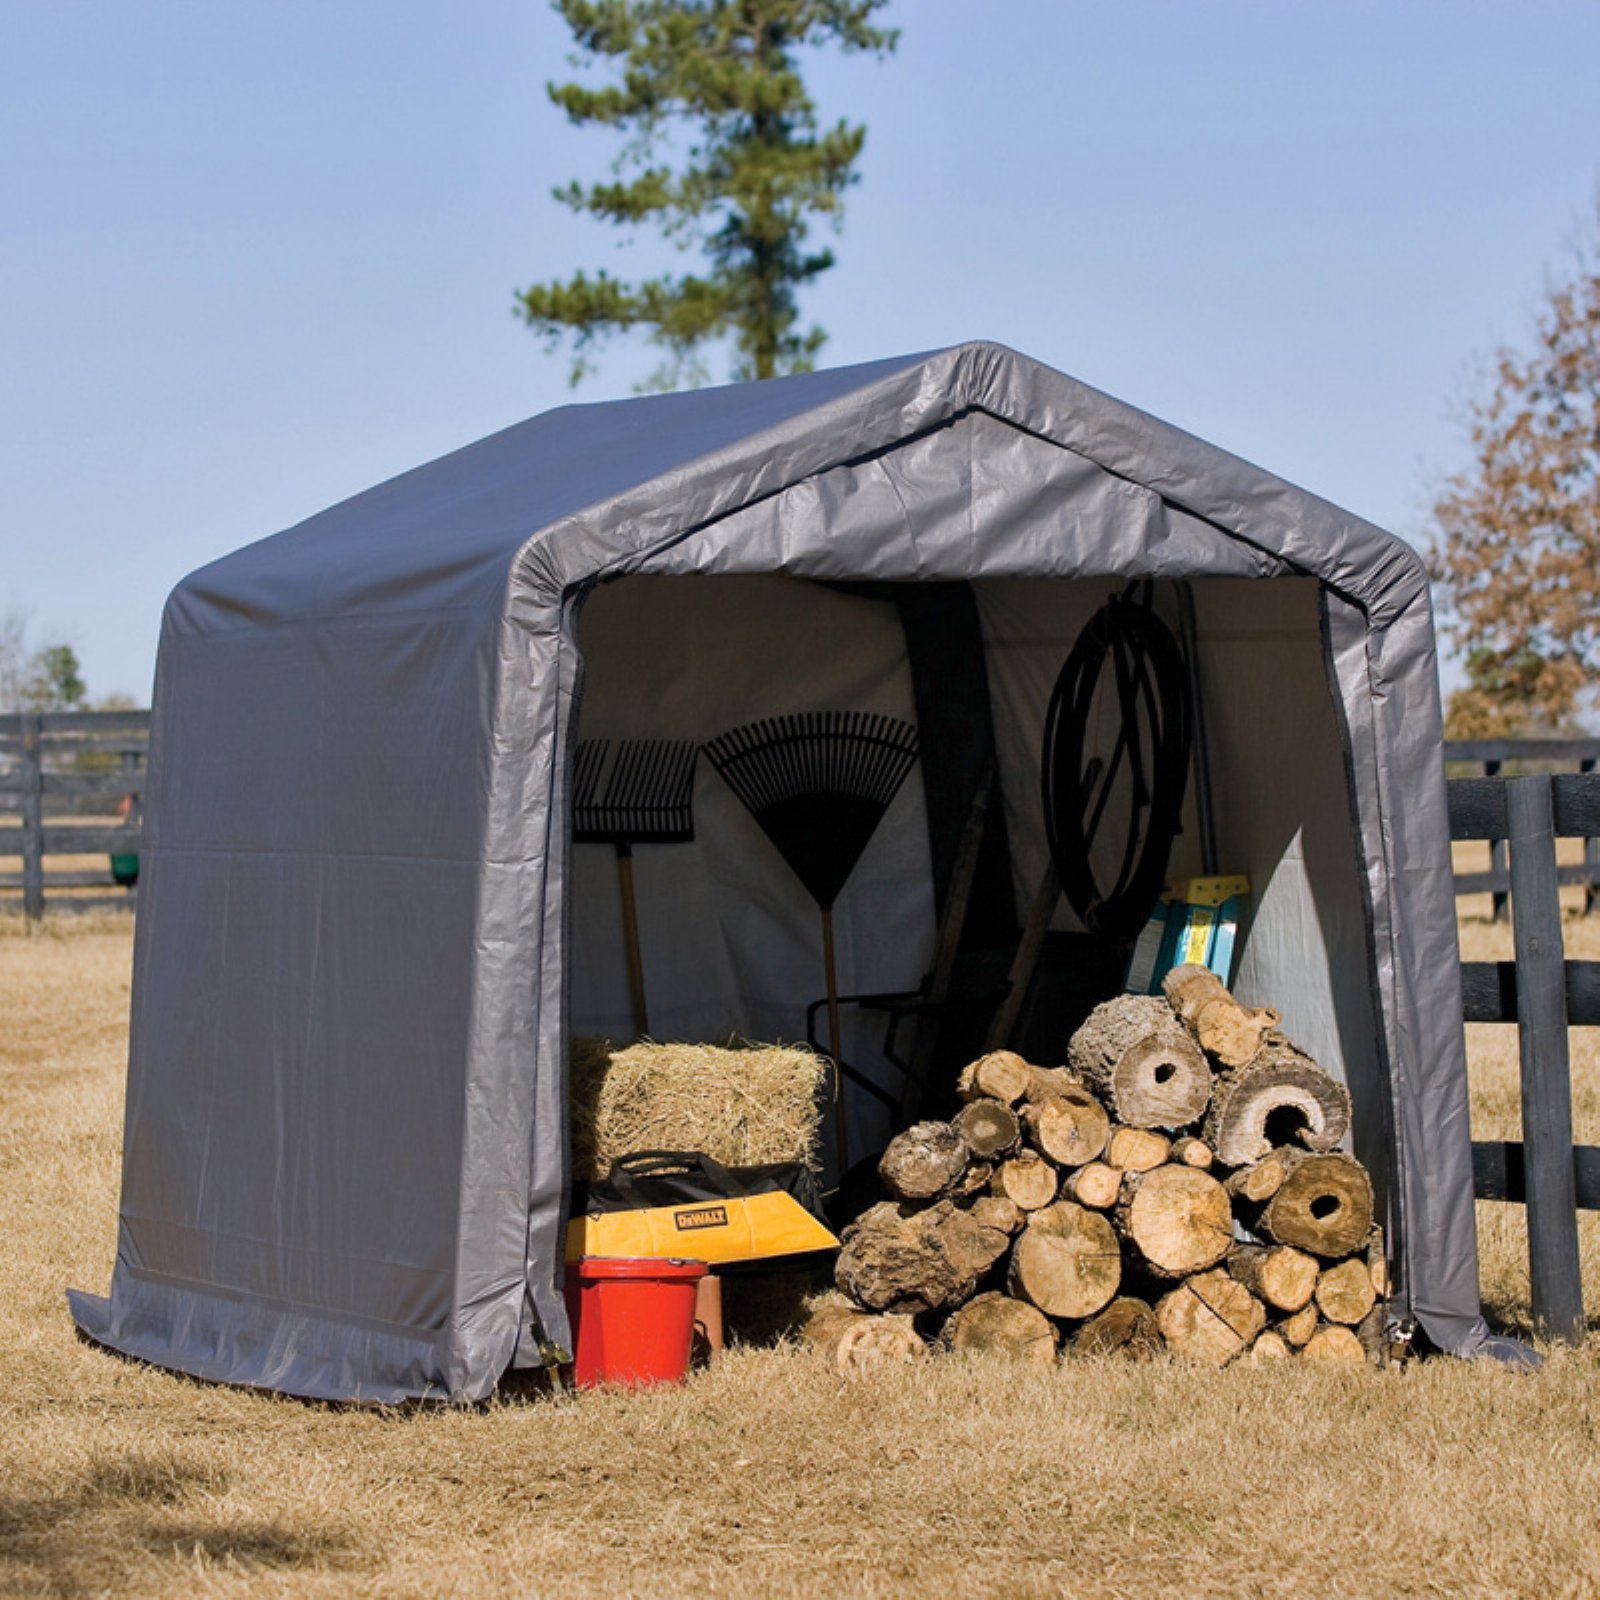 Shed-in-a-Box 10' x 10' x 8' Peak Storage Shed, Gray